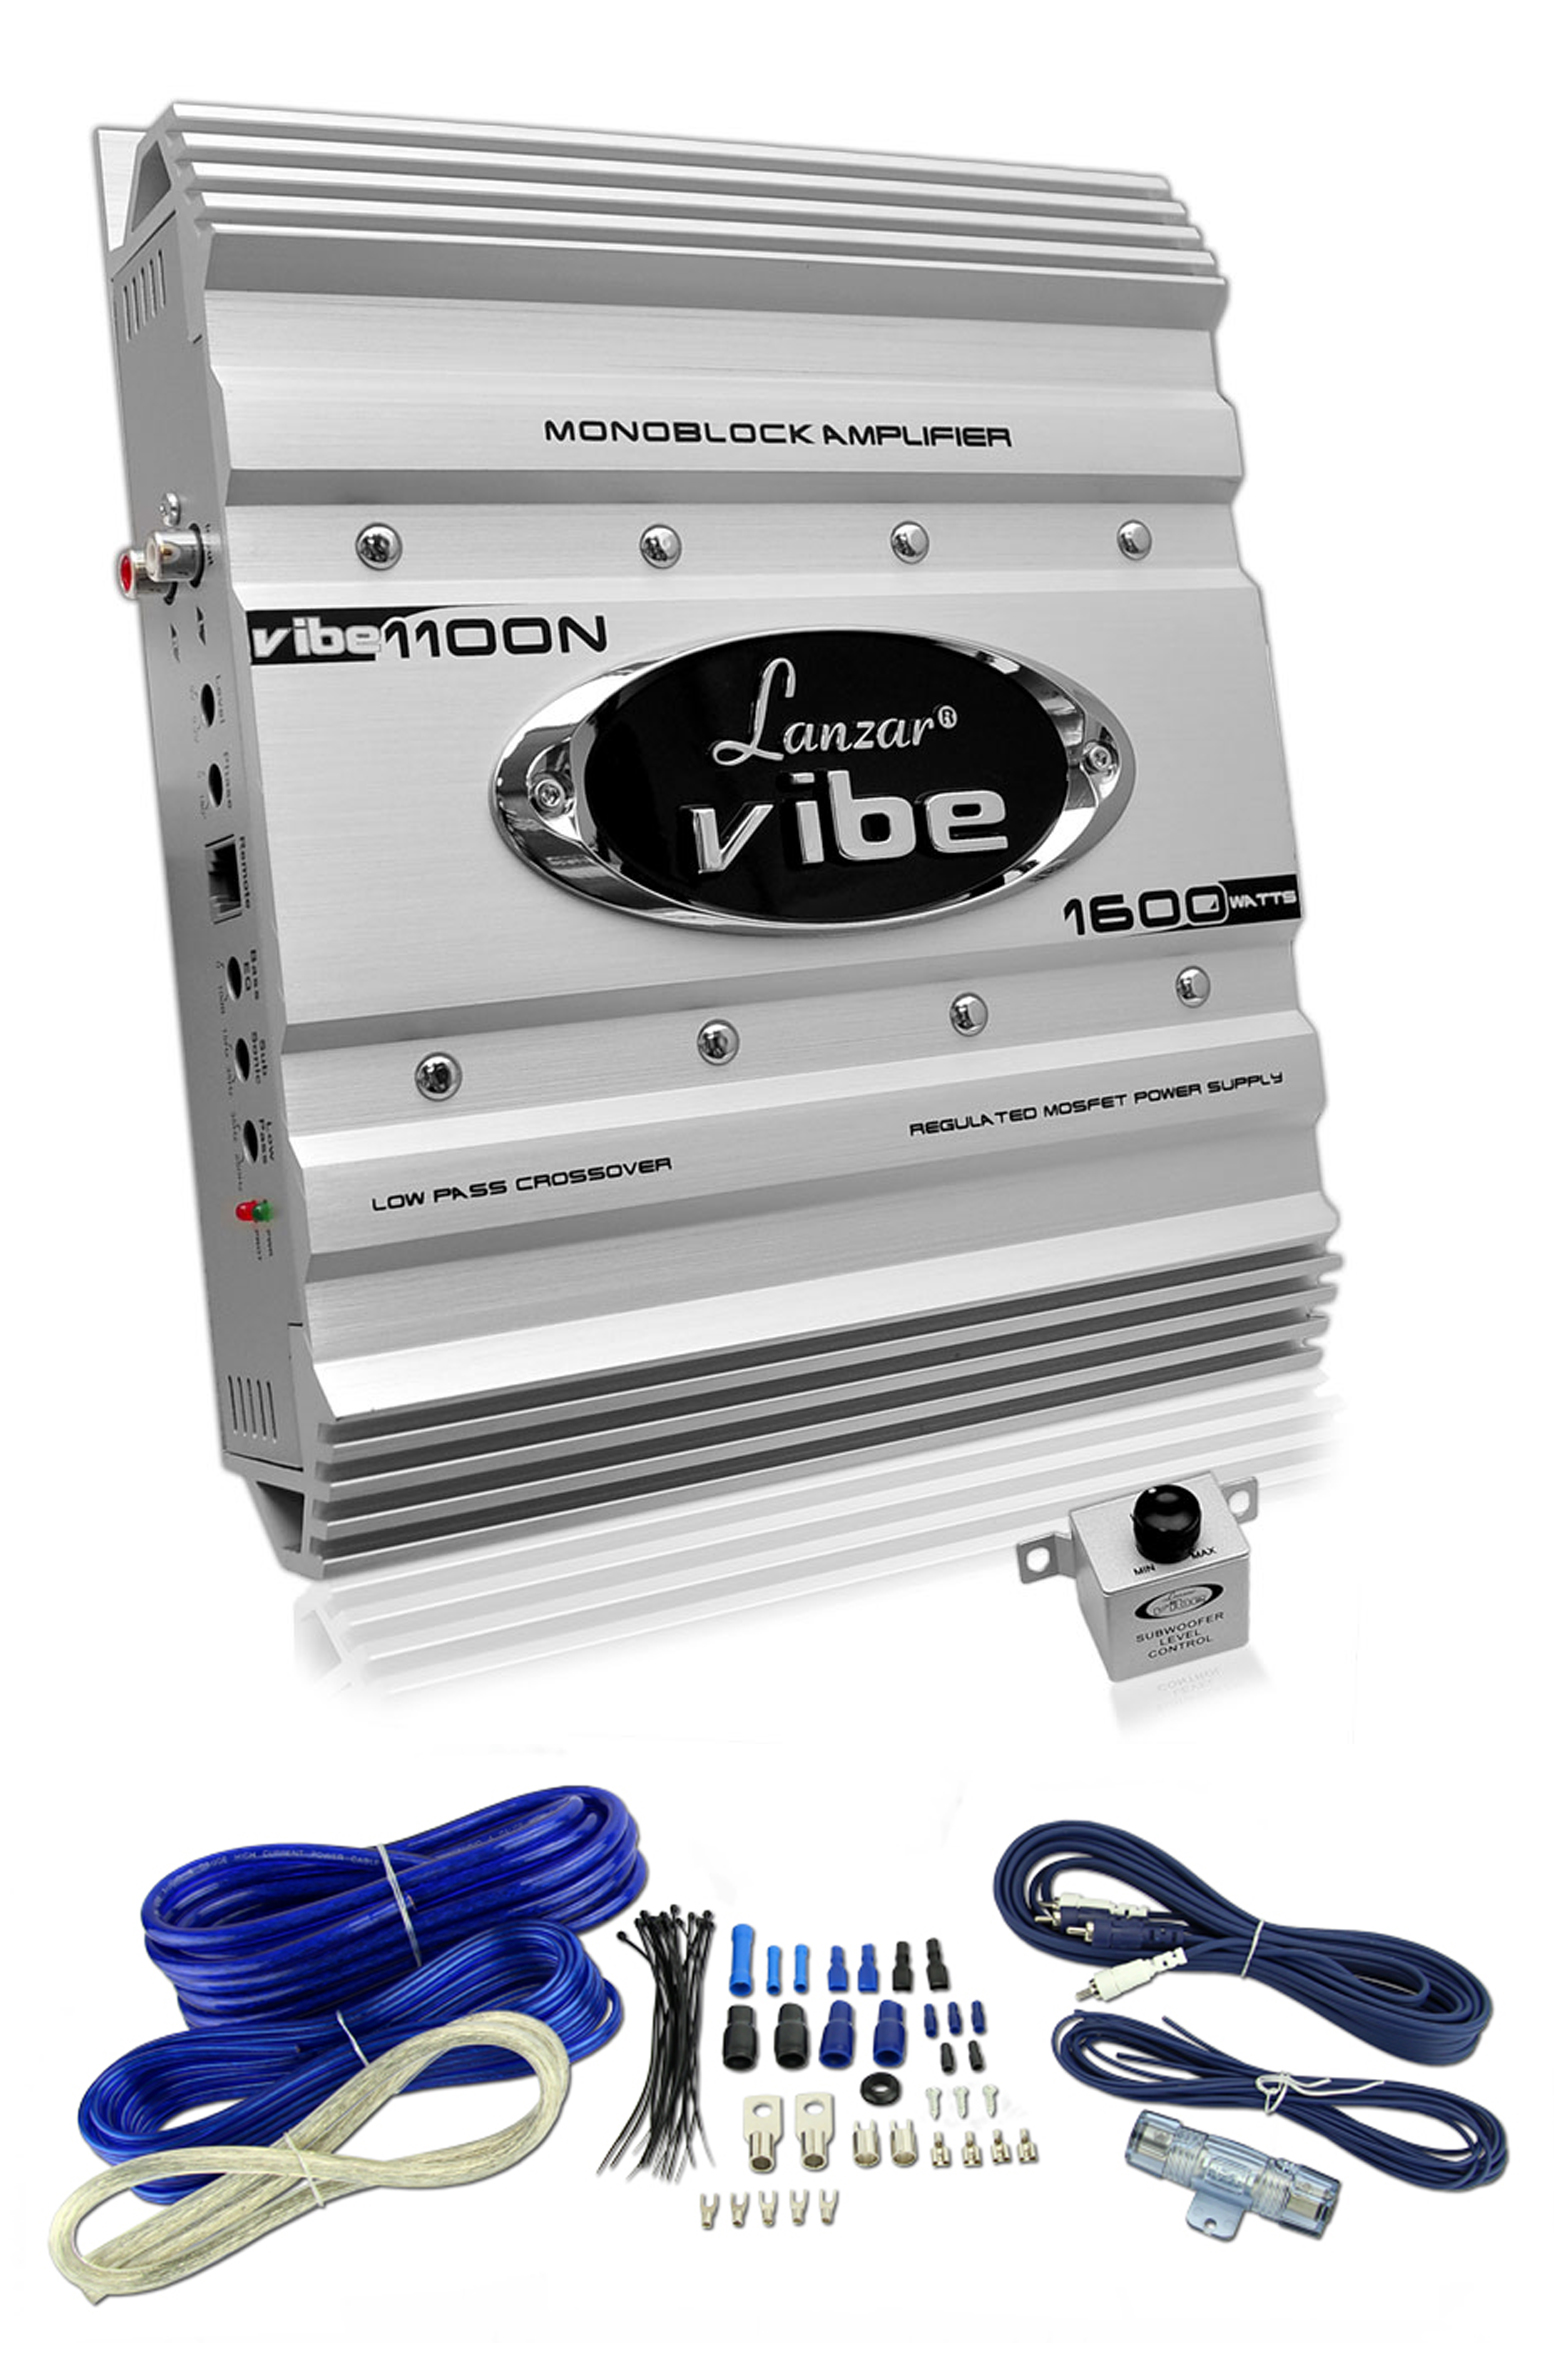 small resolution of new lanzar vibe1100n 1600 watt mono 1 channel car audio amplifier lanzar amp 1400 1 ch lanzar amp wiring